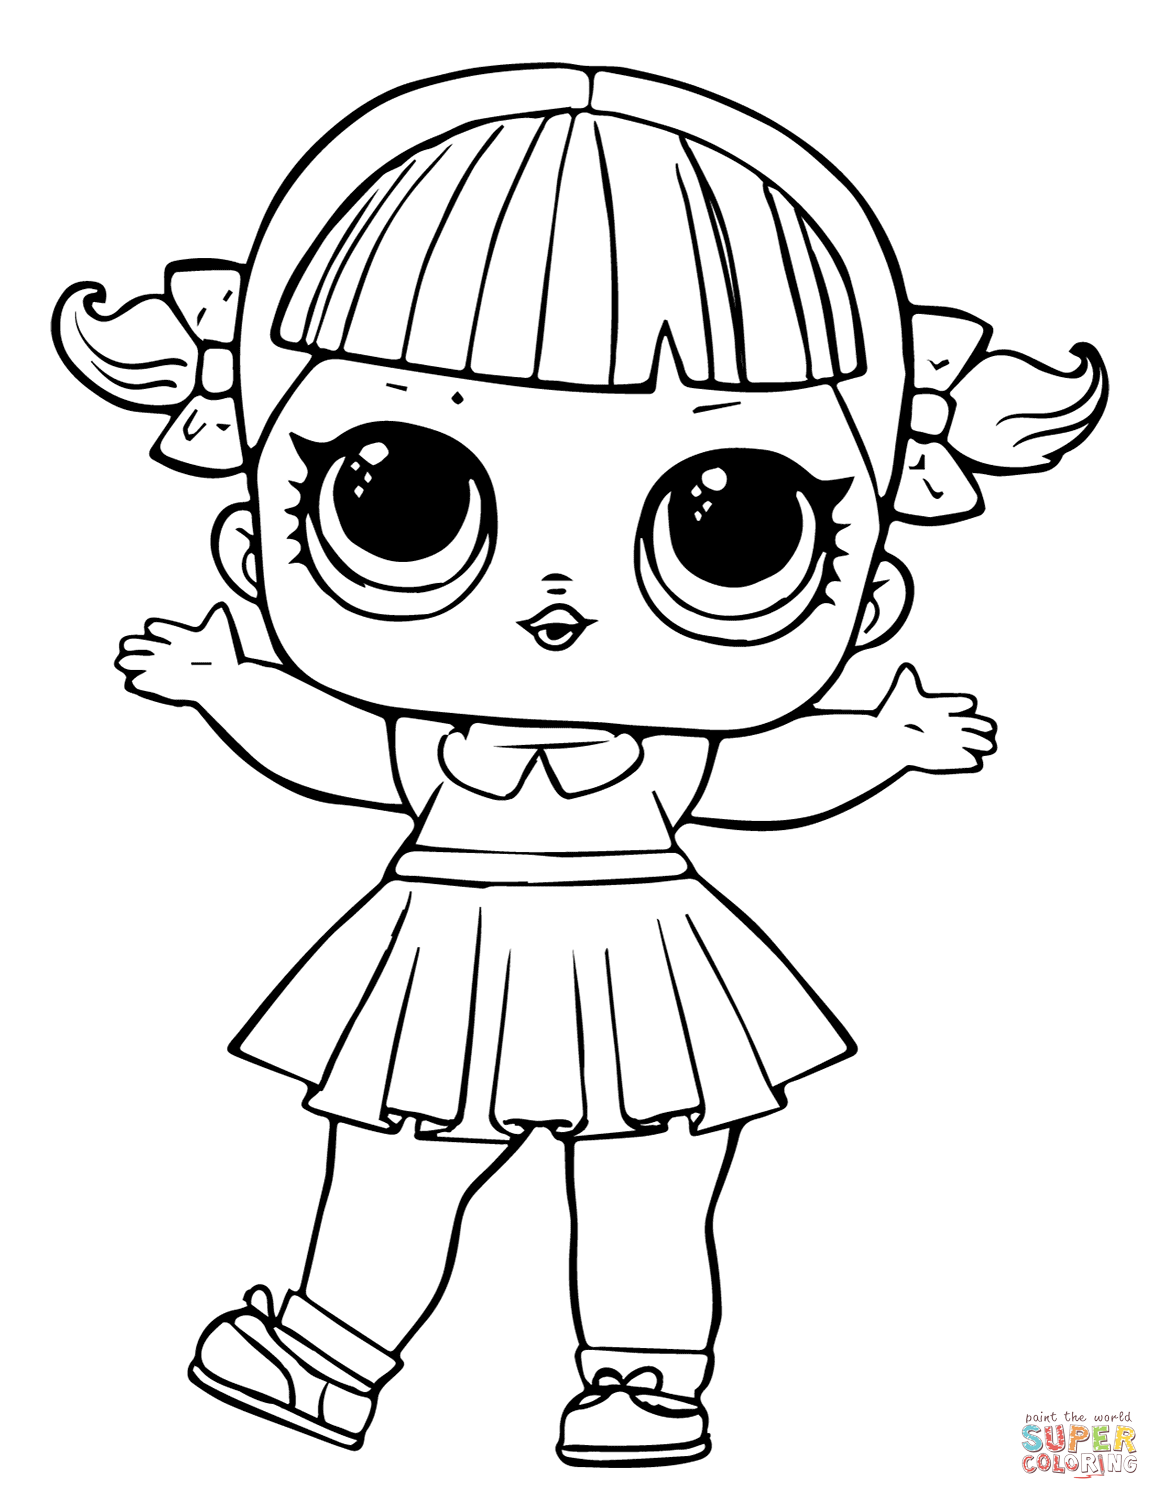 Clipart line tracing picture doll